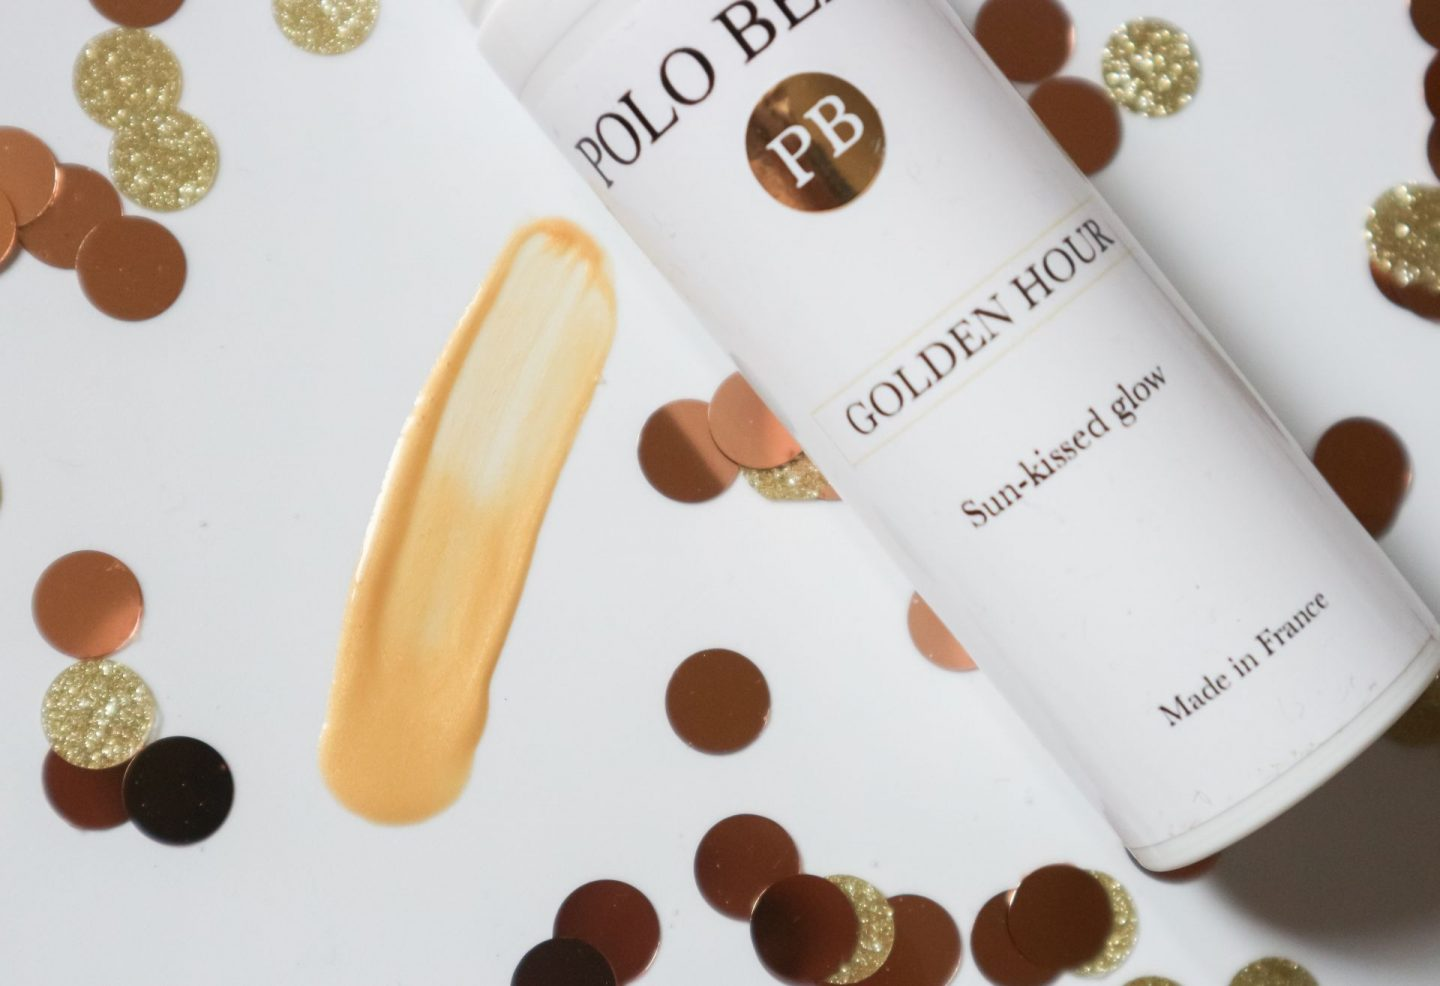 Polo Beauty Golden Hour Body Shimmer Glow